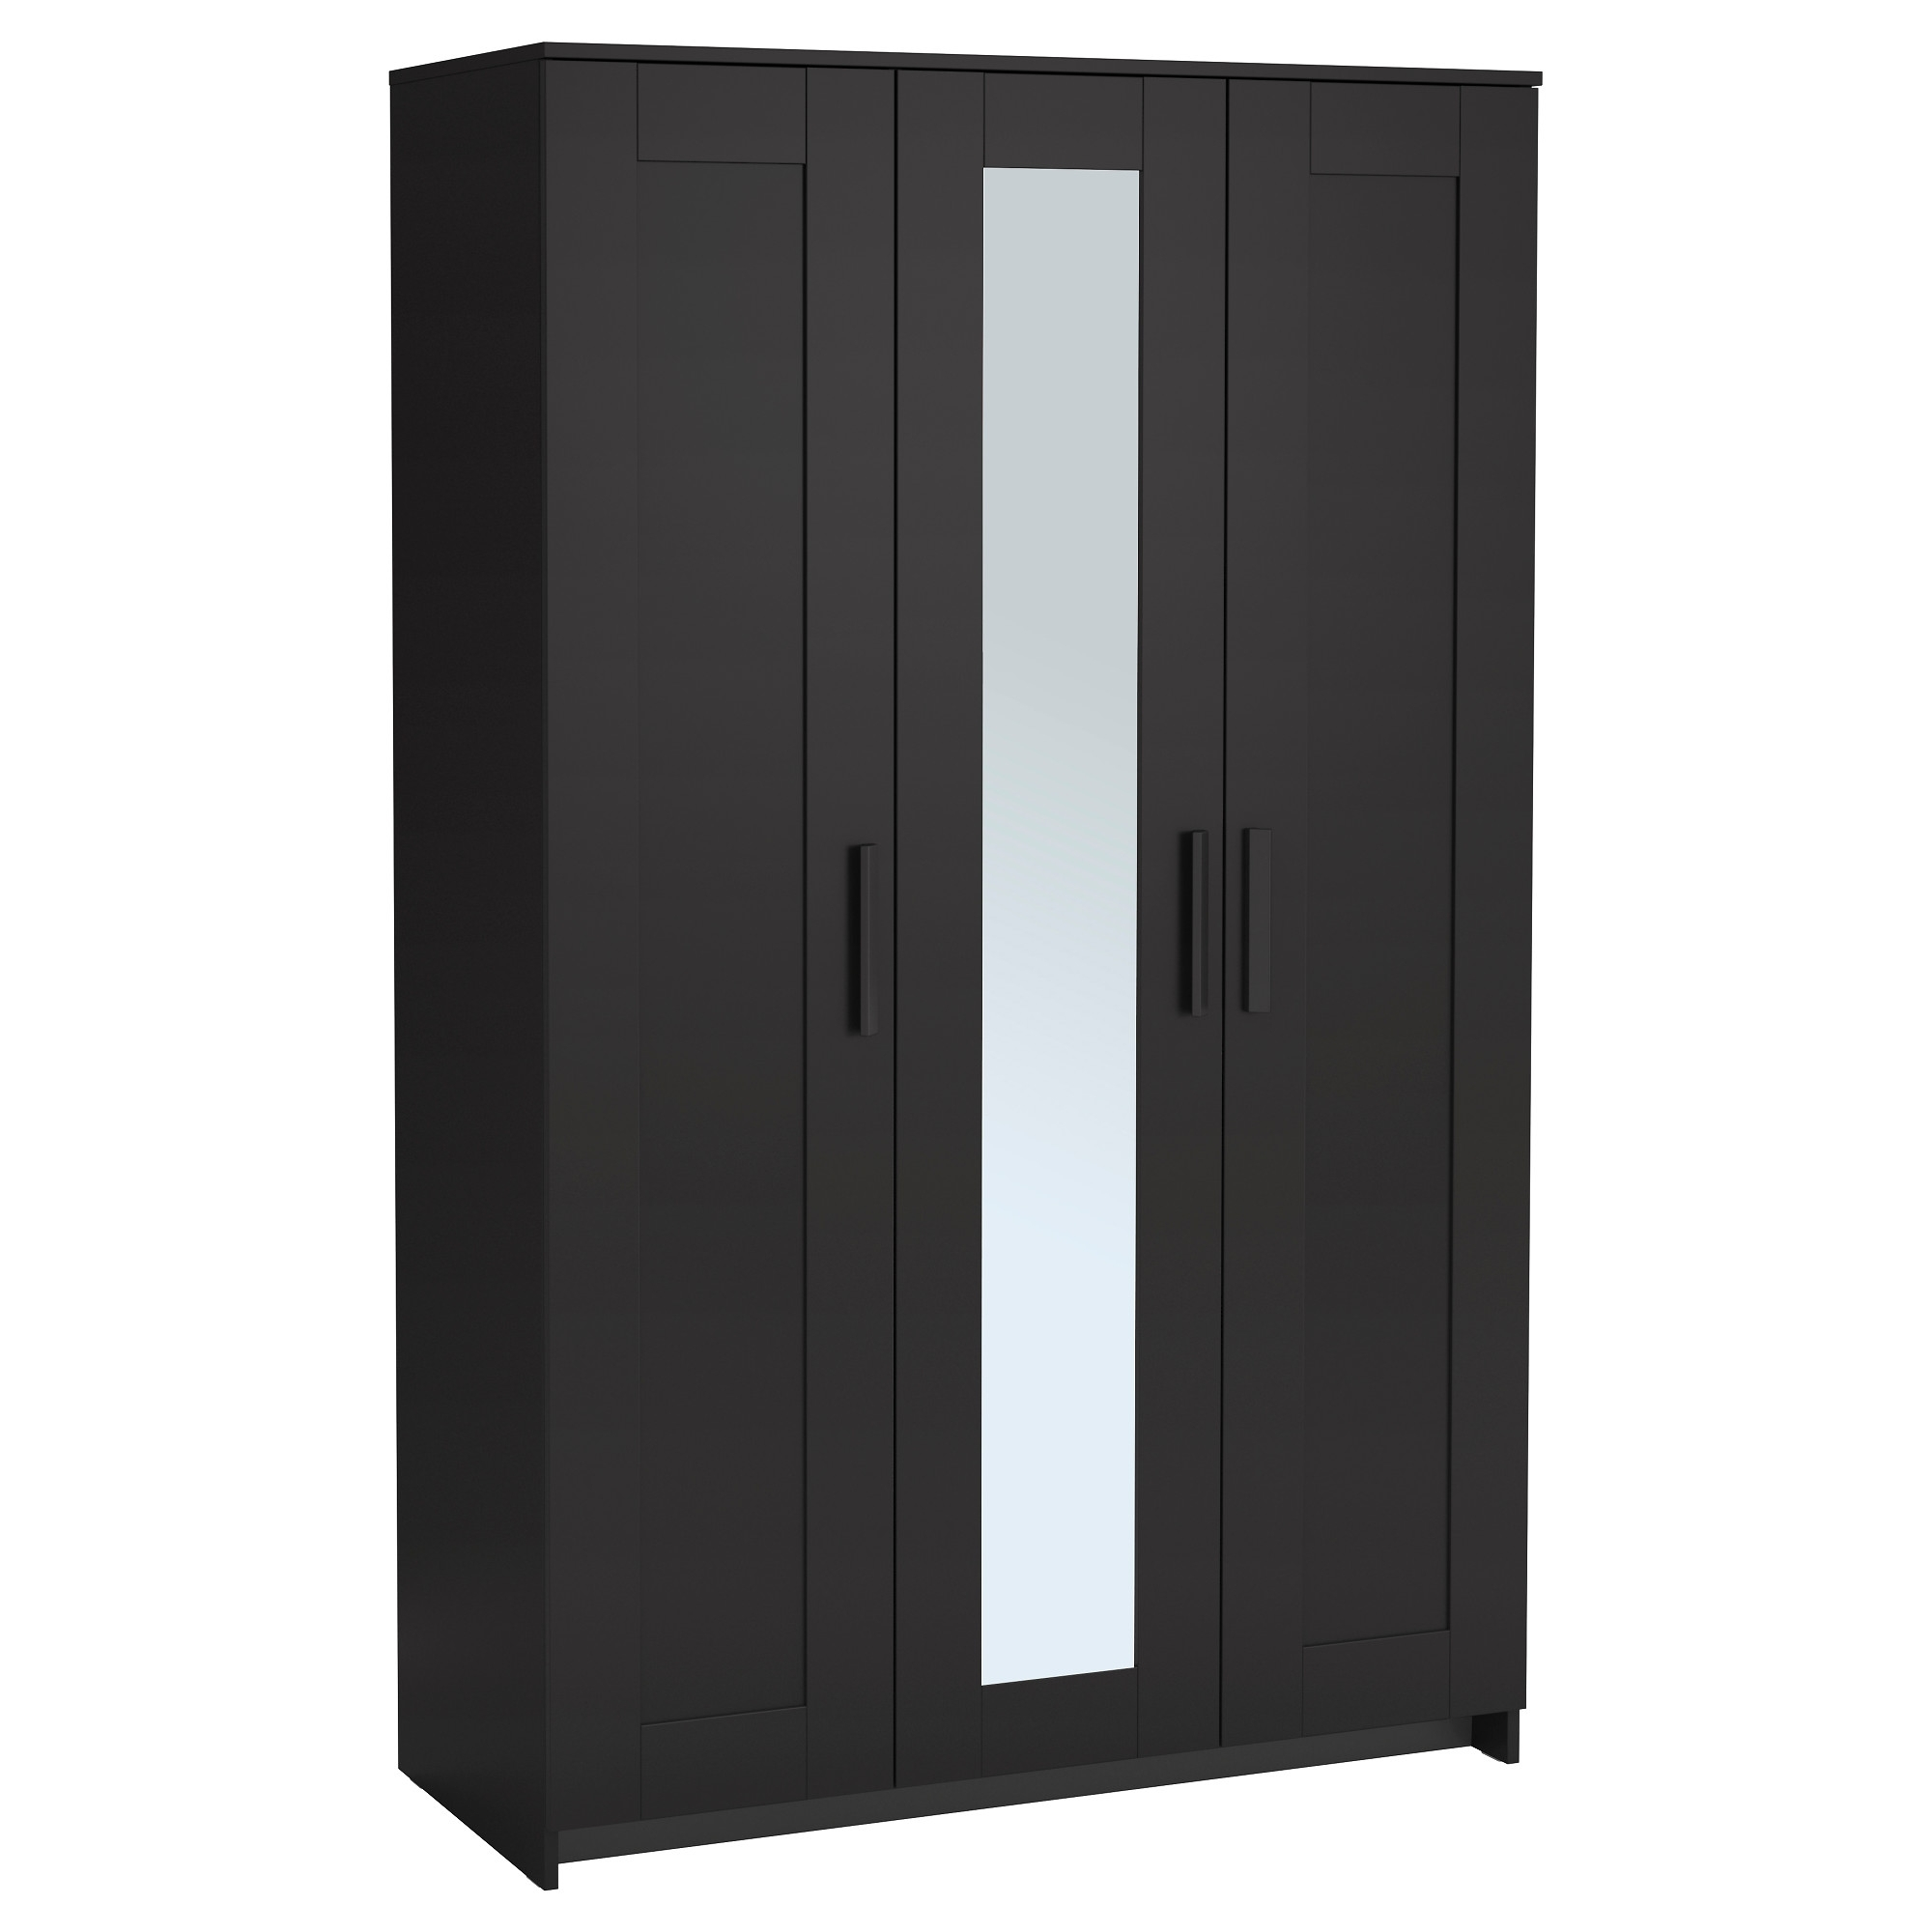 Trendy 3 Door Black Wardrobes Intended For Brimnes Wardrobe With 3 Doors – White – Ikea (View 13 of 15)